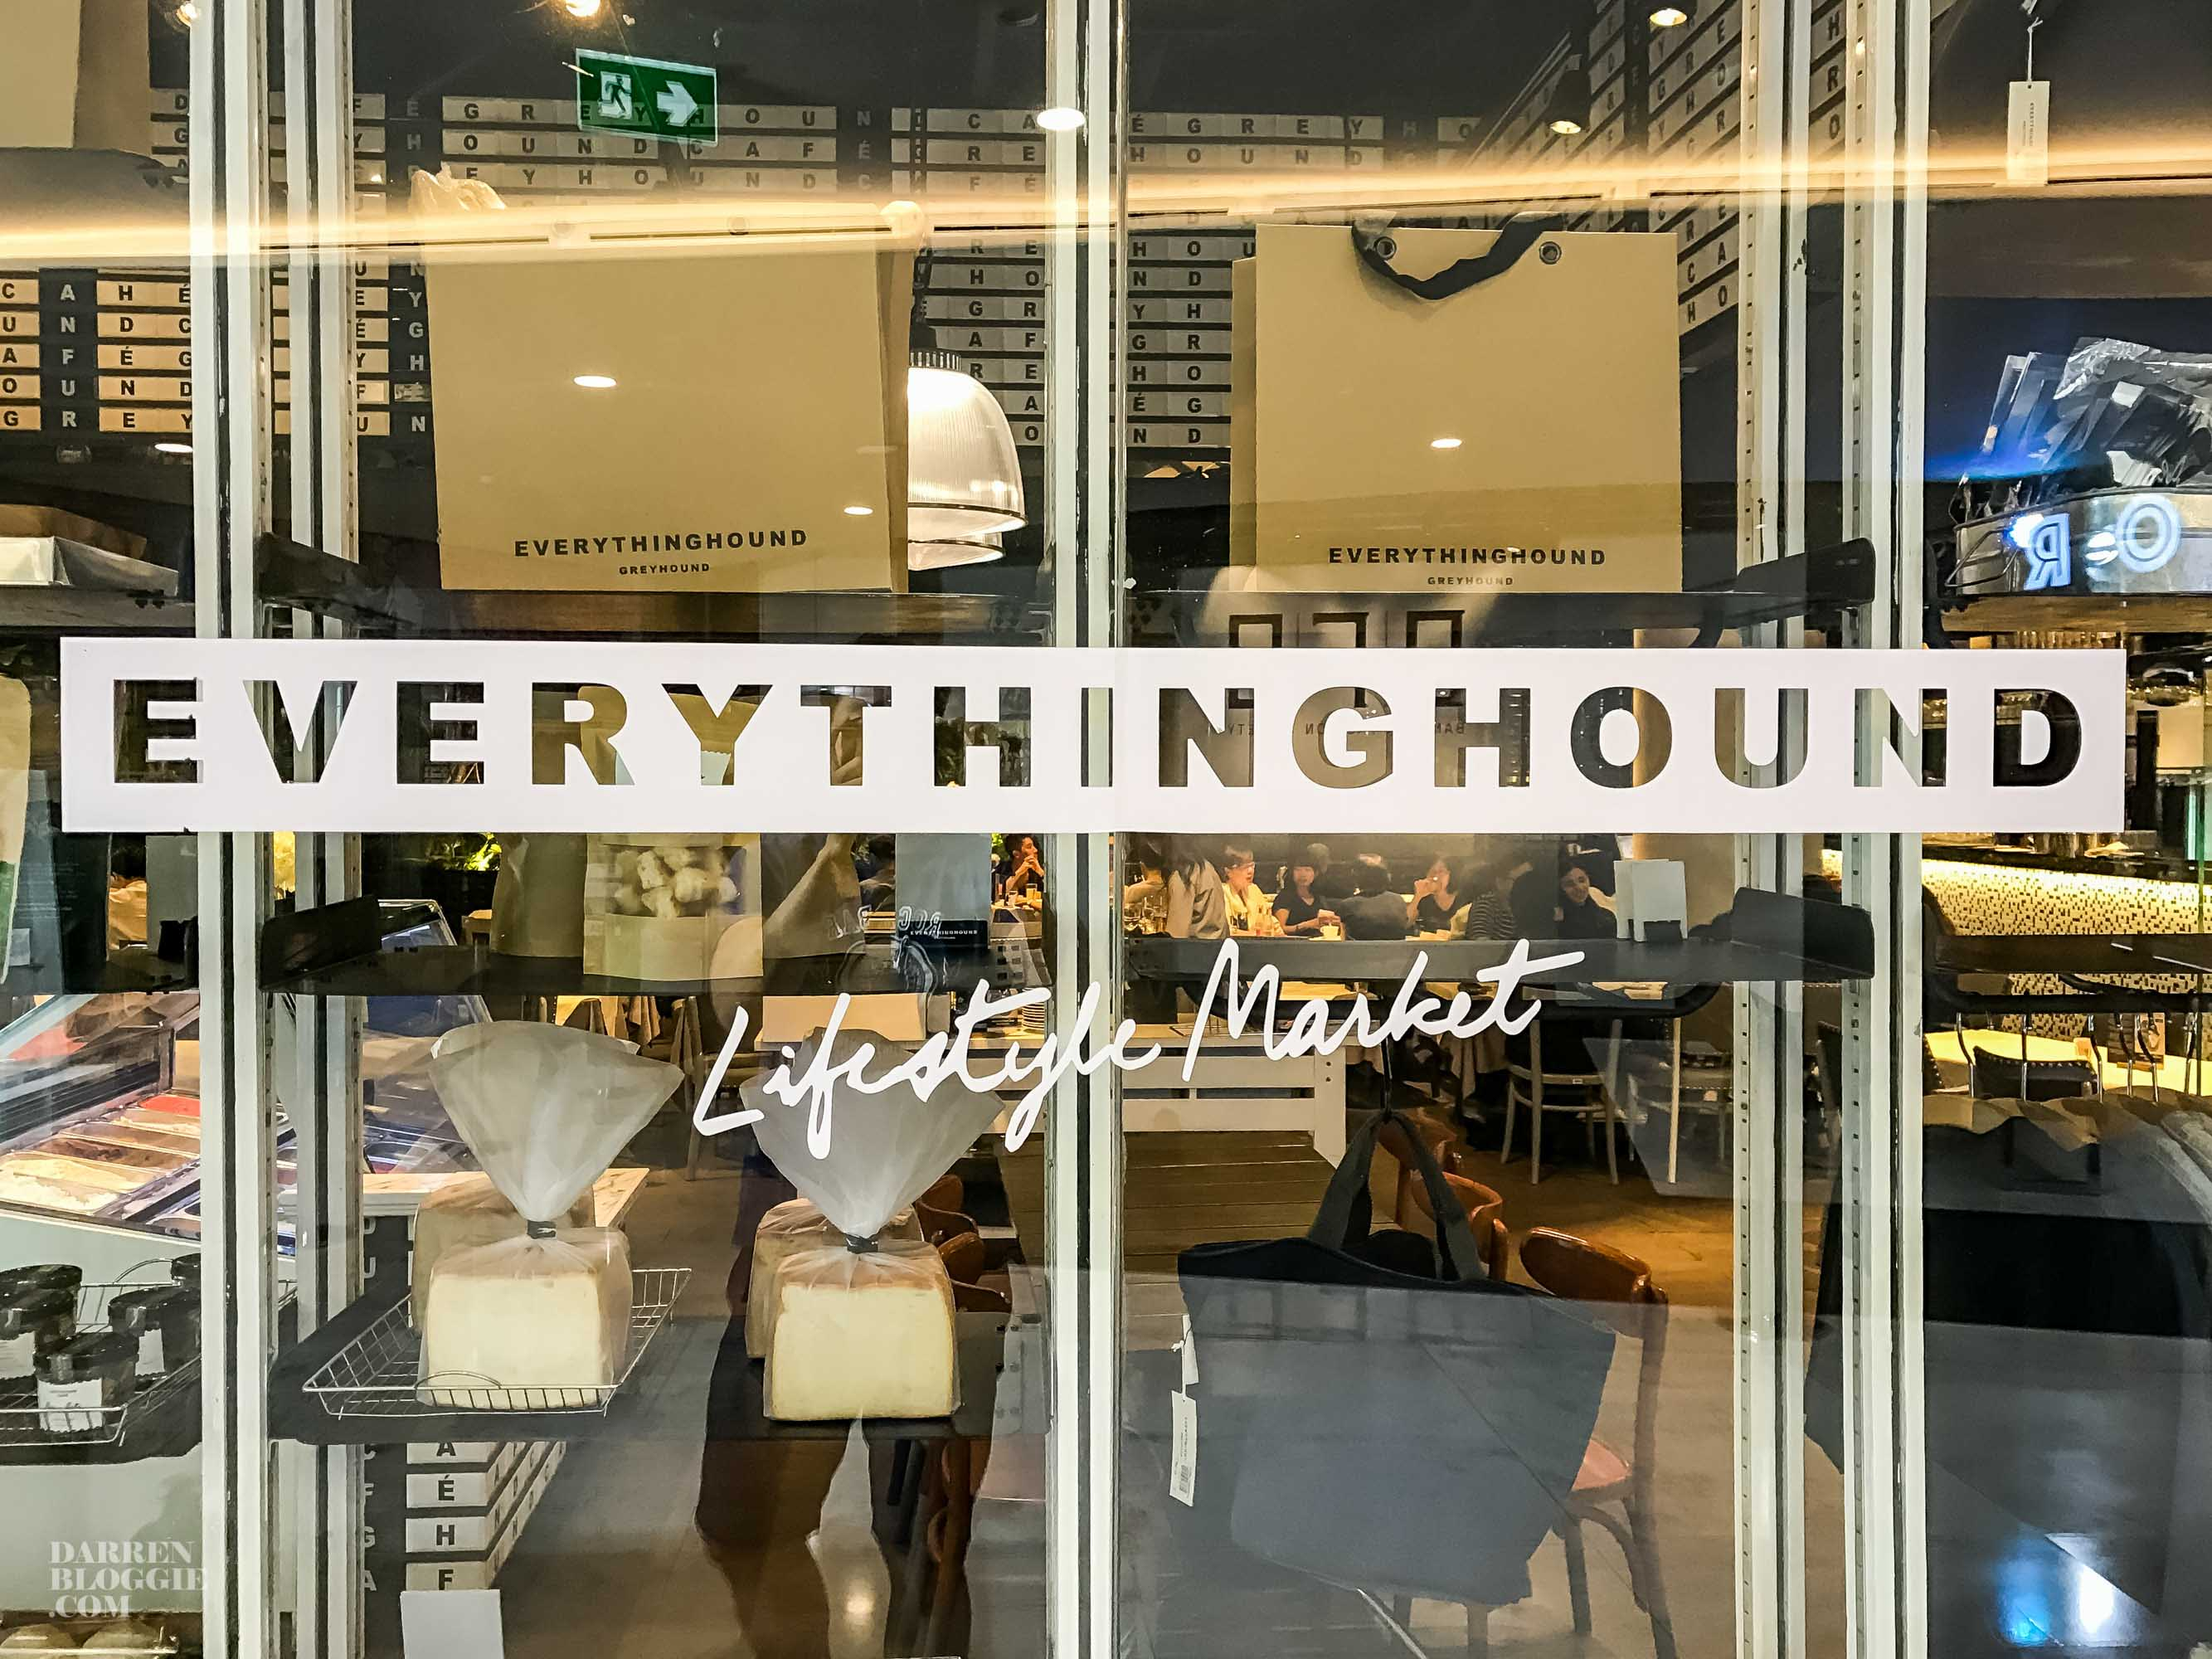 greyhound-cafe-thailand-bangkok